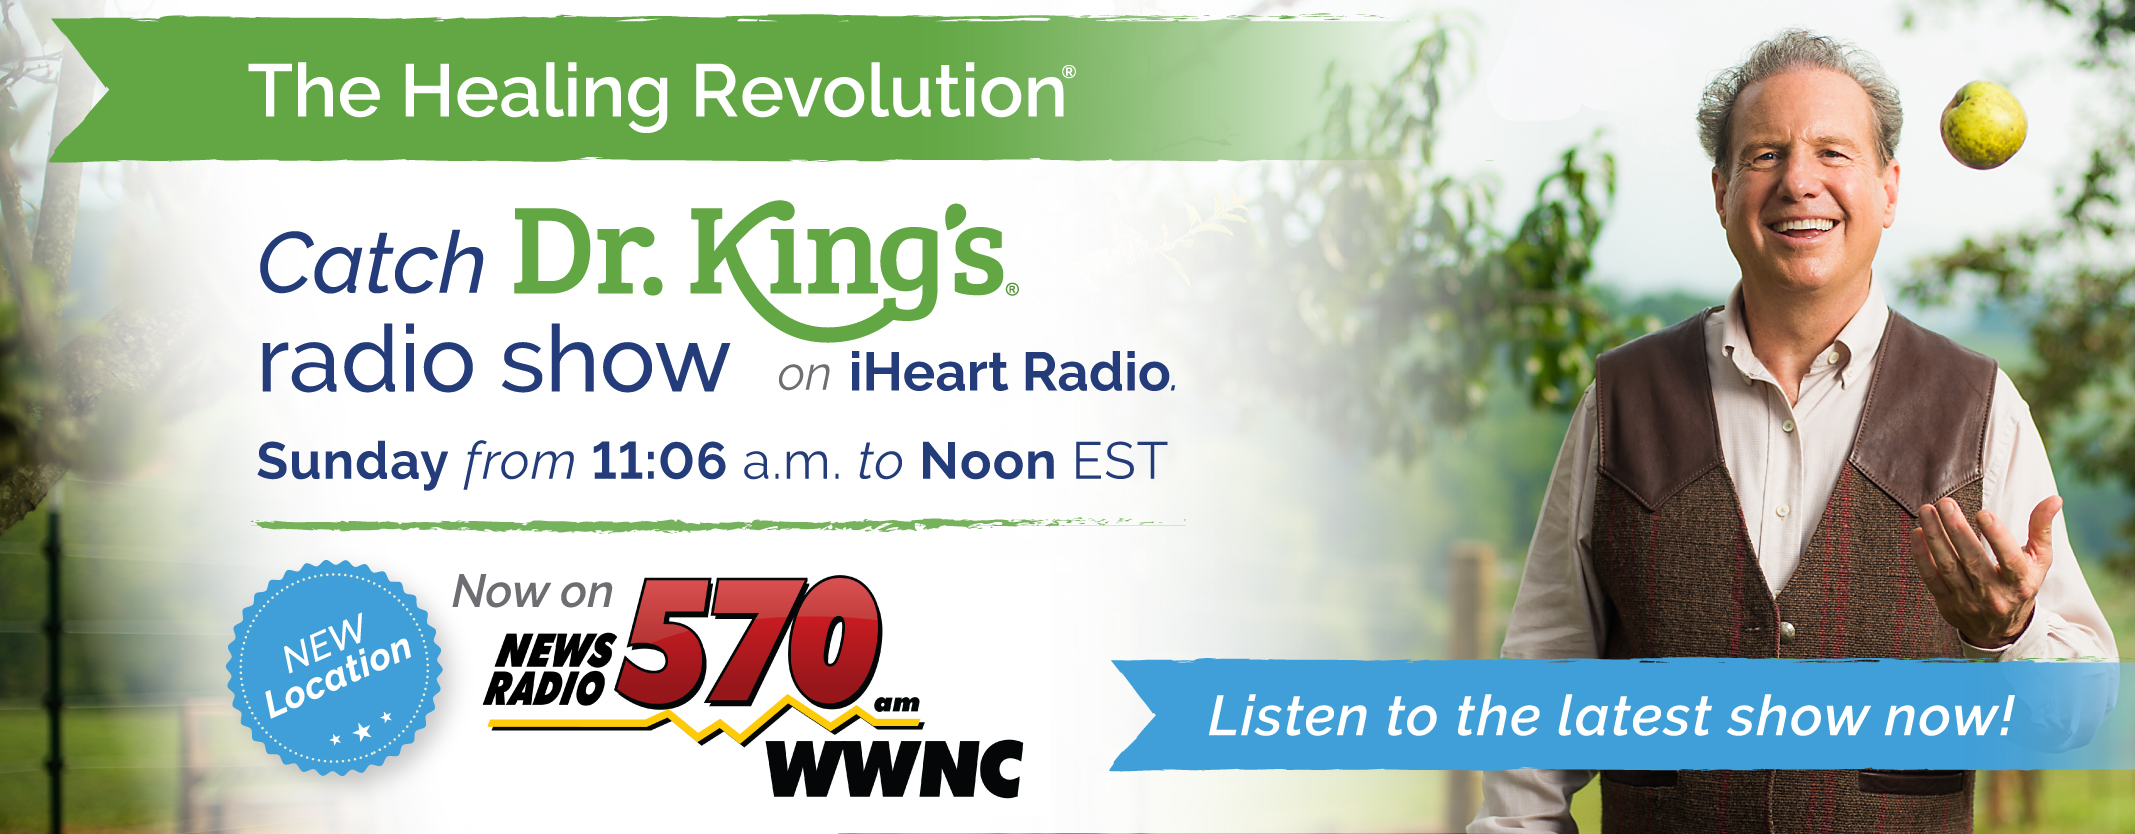 The Healing Revolution Radio Show